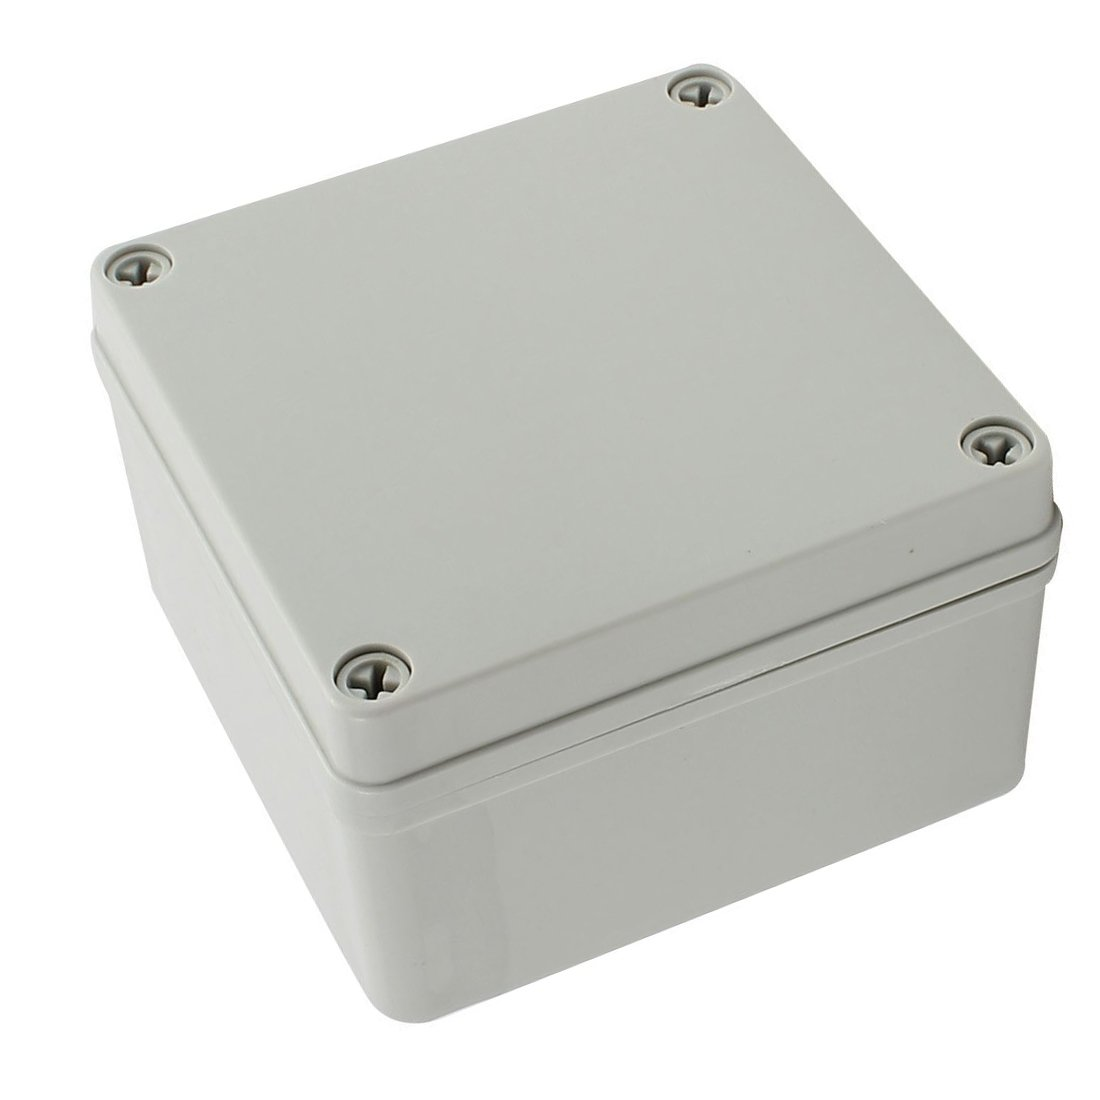 YXQ 125 x 125 x 75mm Electrical Project Case Junction Box IP65 Waterproof ABS DIY Power Outdoor Enclosure Gray (5 x 5 x 3 inches)